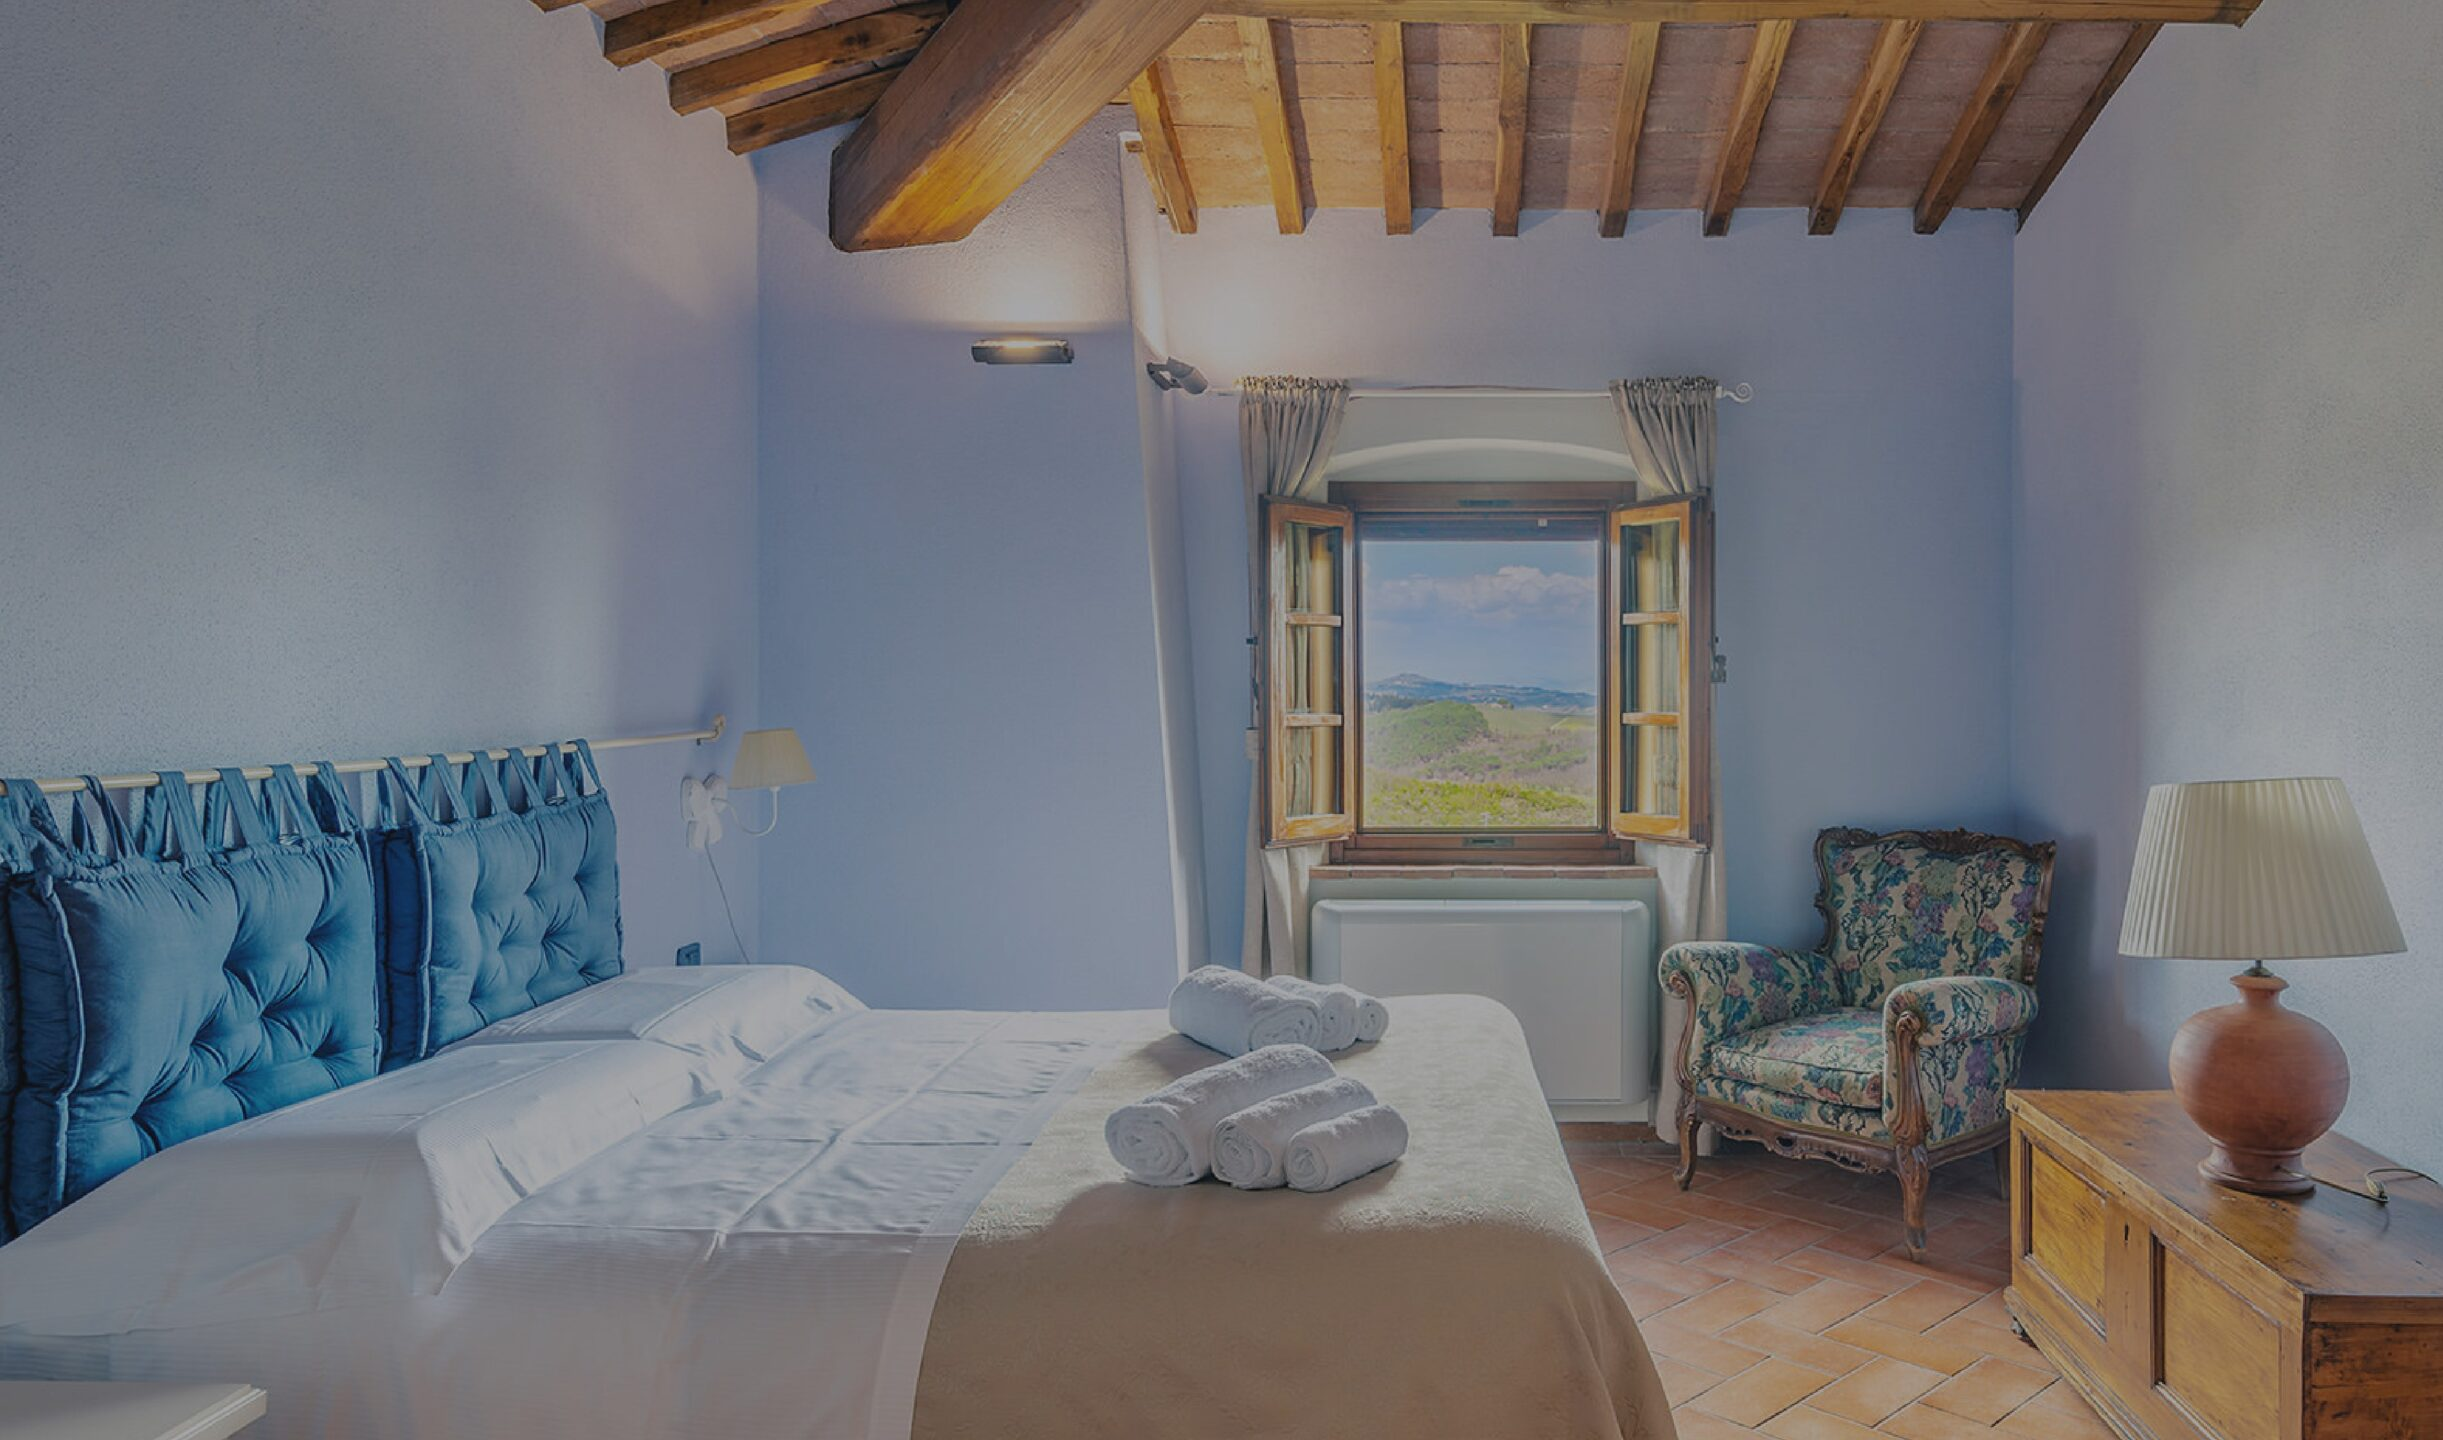 Rooms and Suites in the Tuscan style - Rooms and Suites in the Tuscan style